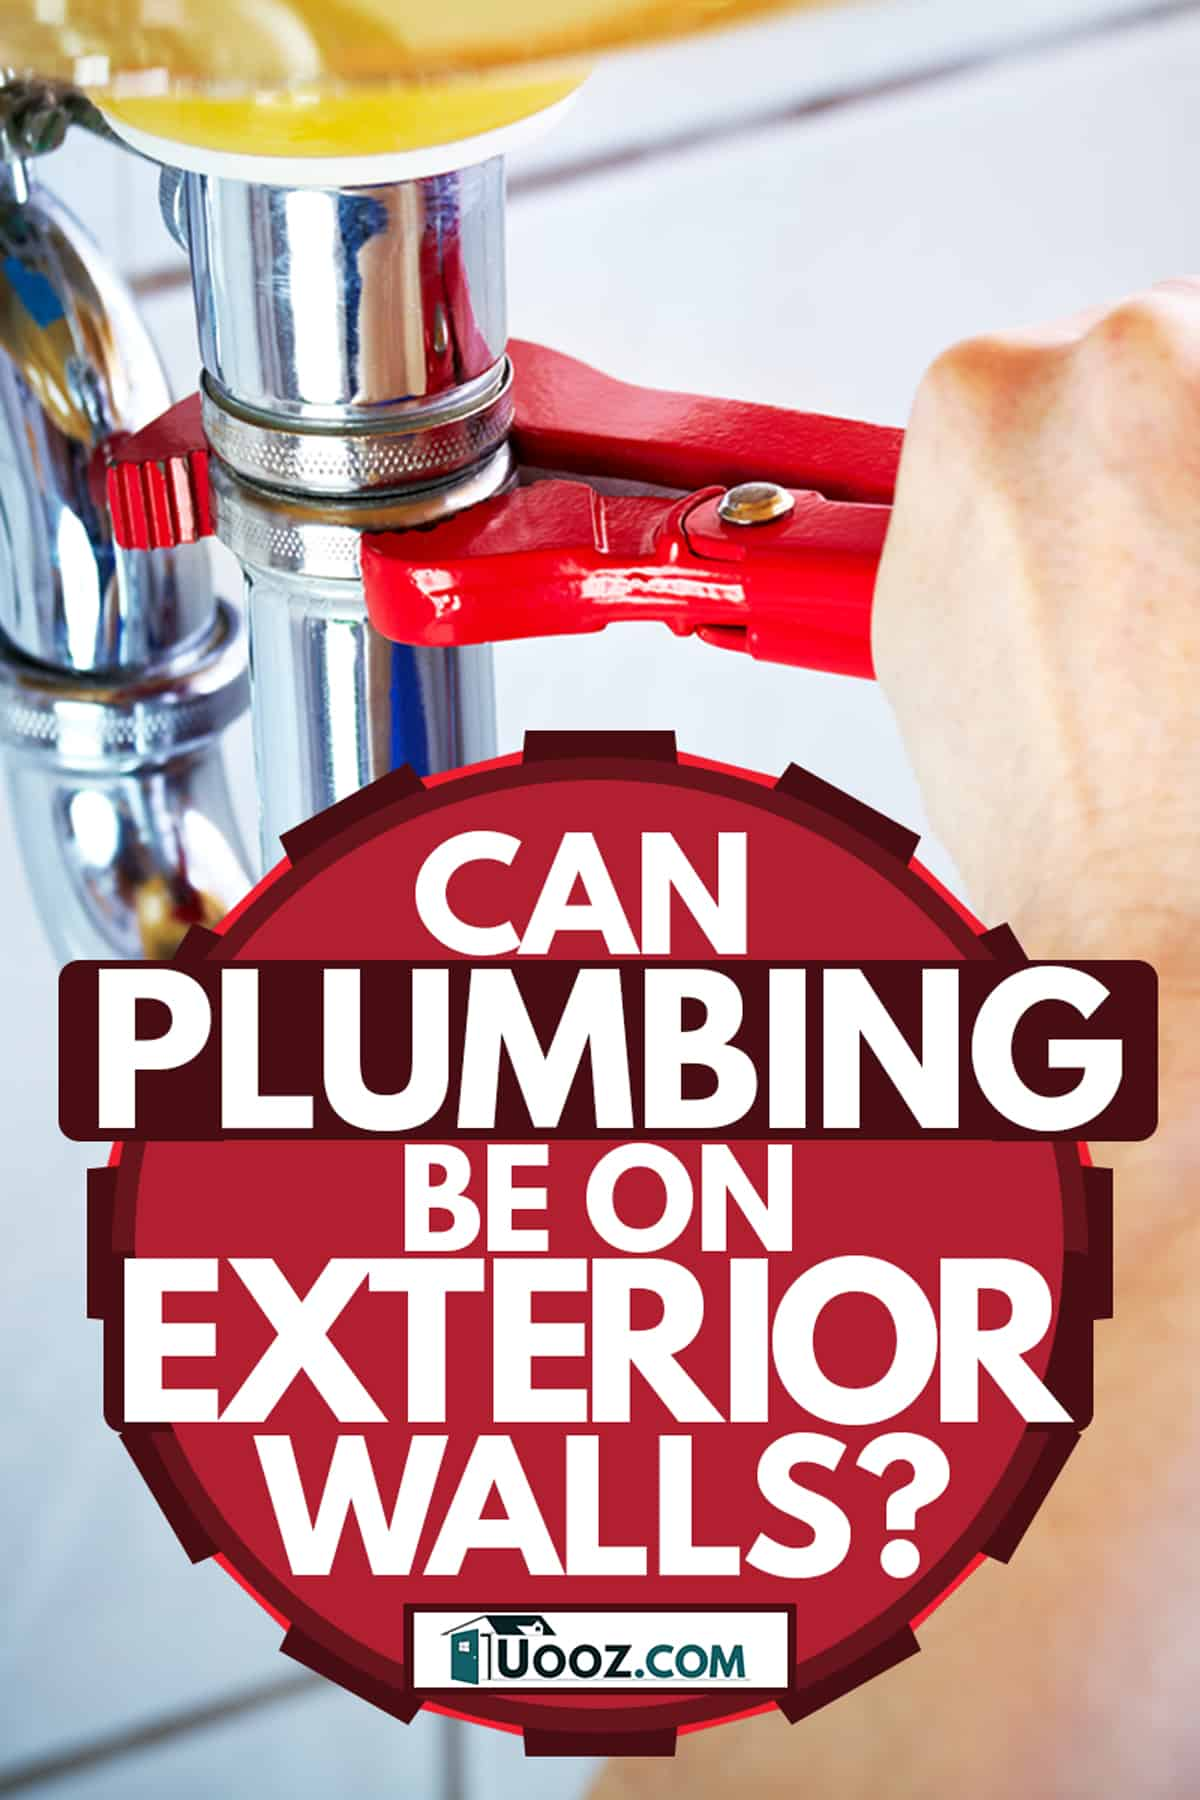 A plumber adjusting the G.I P-trap pipe using a pipe wrench, Can Plumbing Be On Exterior Wall?